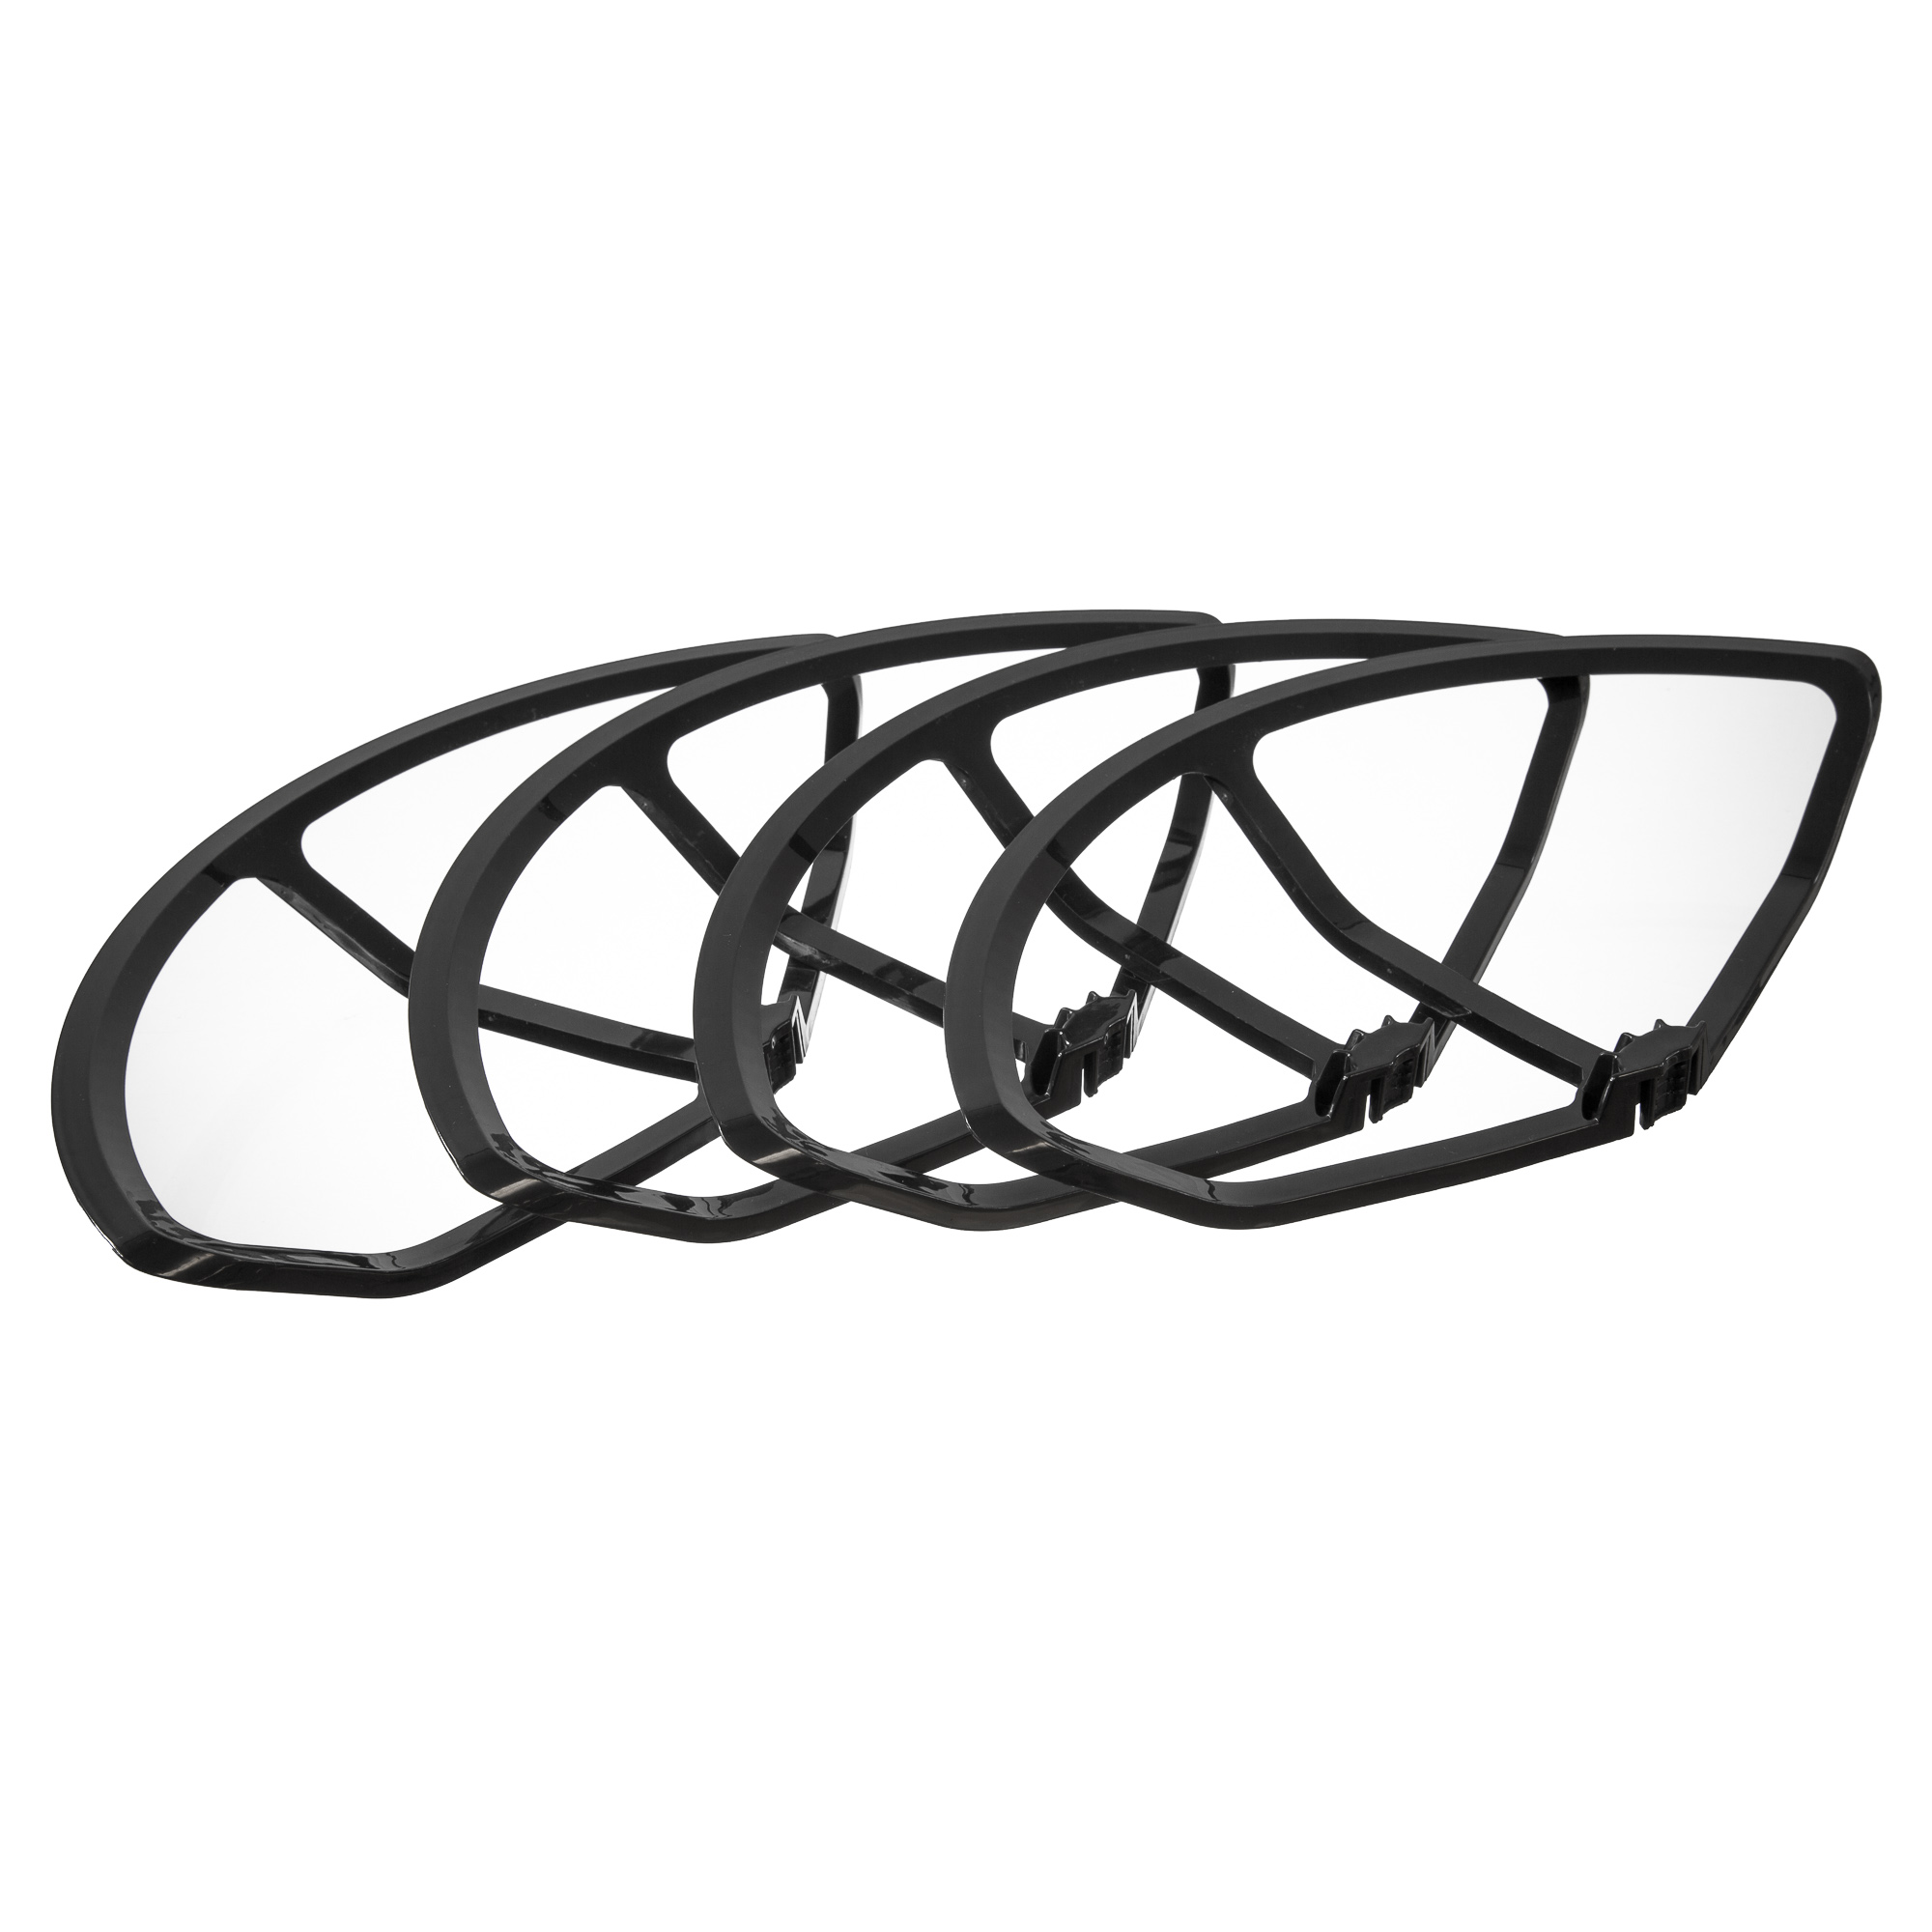 Ultimaxx Quick Snap On/Off Propeller Guards for DJI Phantom 4 Quadcopter - Black (Set of 4) - image 2 of 2